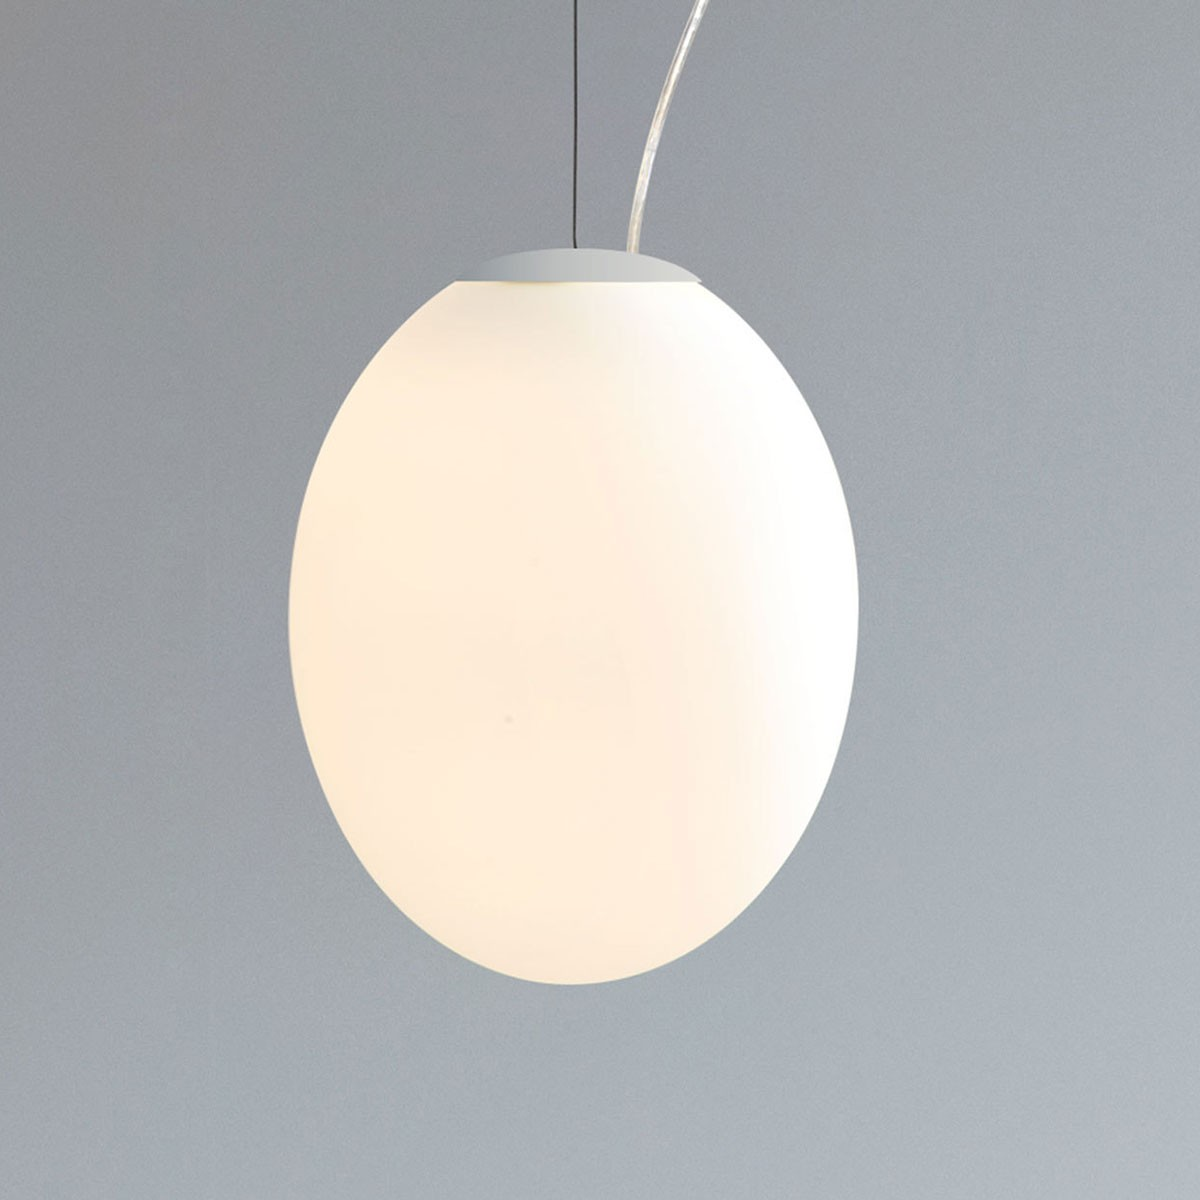 Astro cortona 320 white glass pendant light at uk electrical supplies astro cortona 320 white glass pendant light aloadofball Choice Image